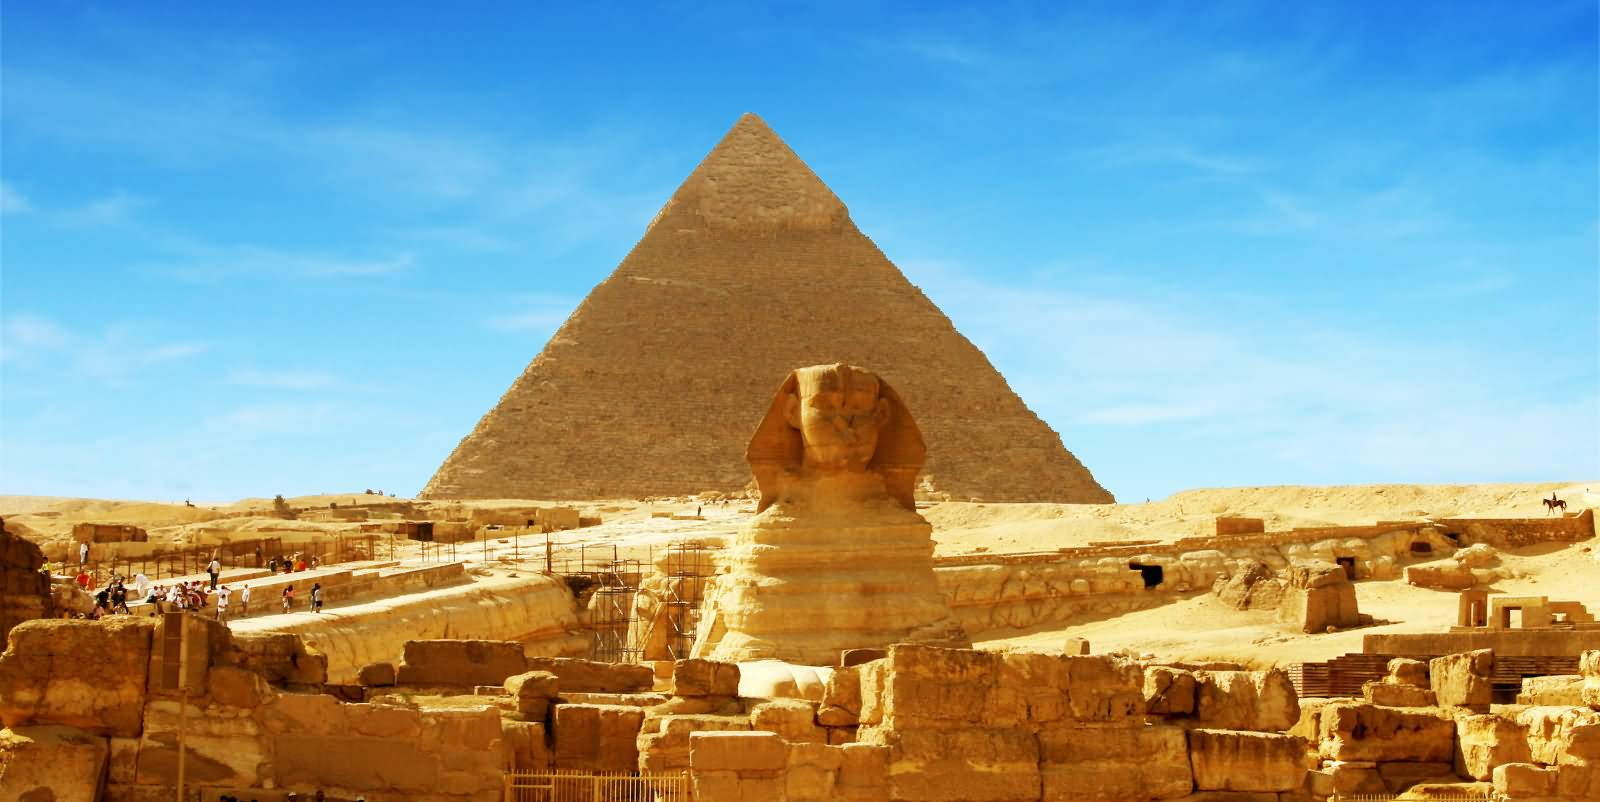 Sunset View Of Great Sphinx of Giza And Pyramid In Background